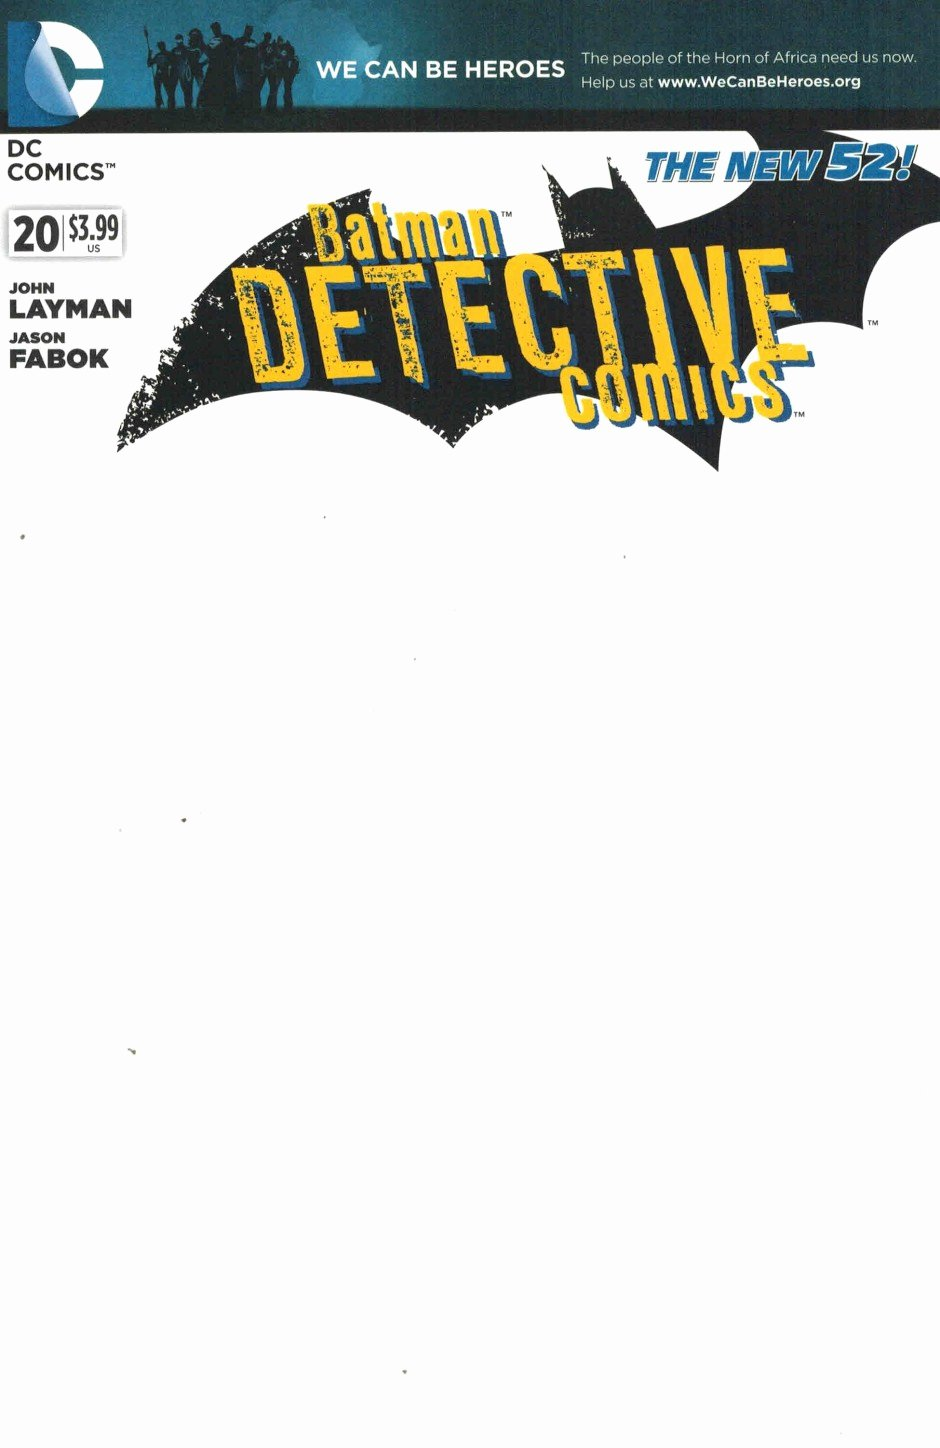 Blank Comic Book Cover Template Beautiful Detective Ics 20 Blank Variant Cover We Can Be Heroes